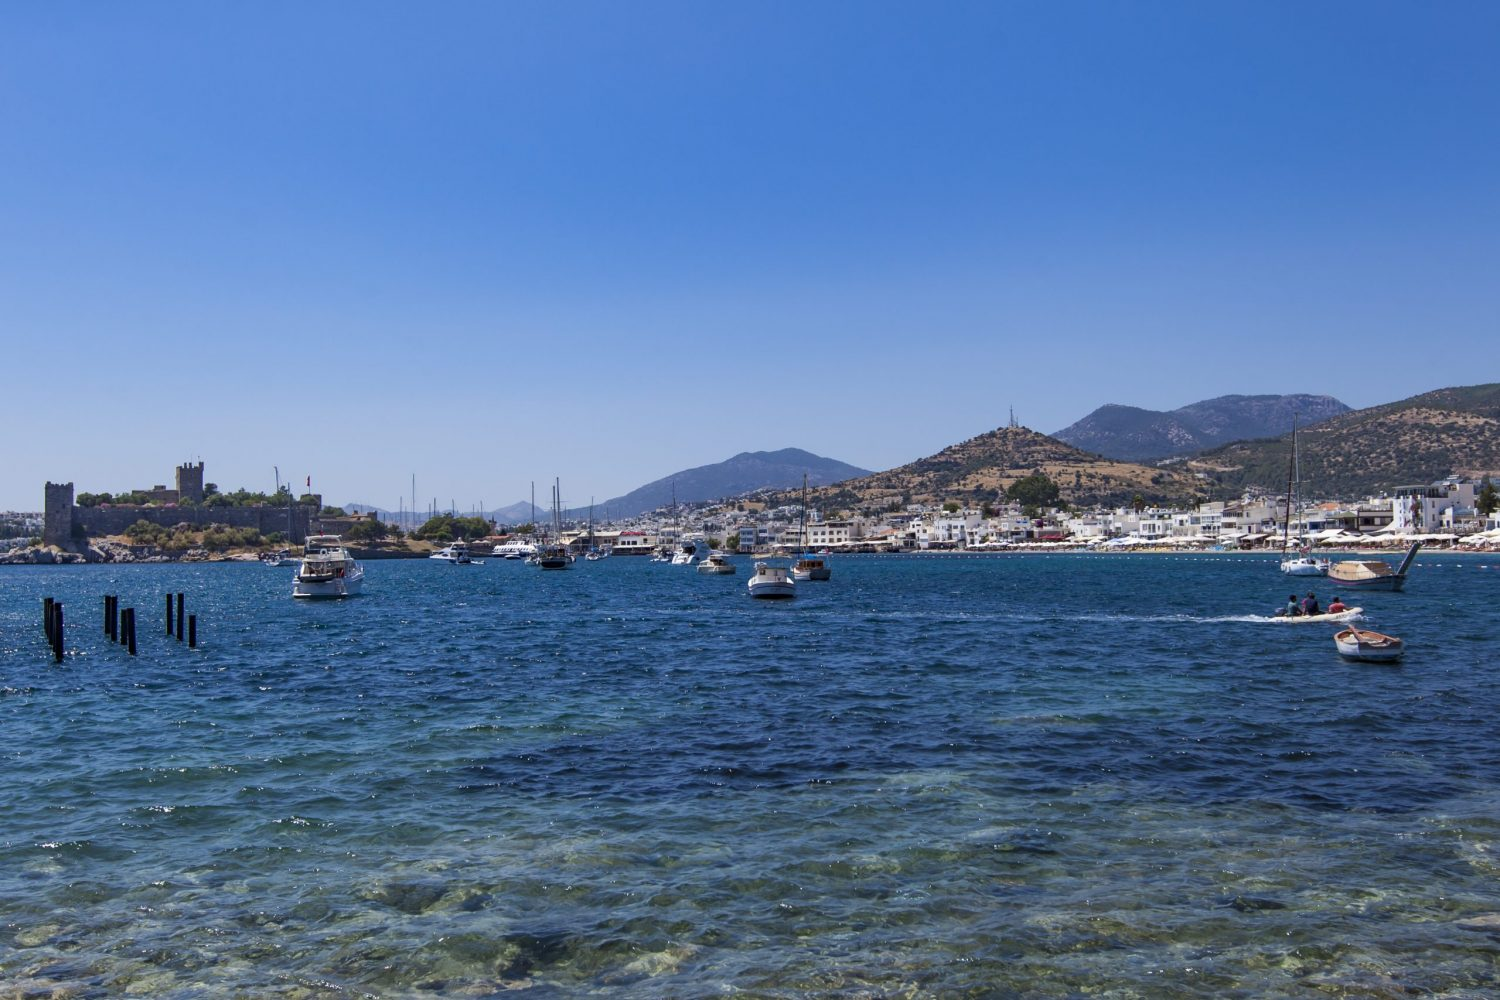 Detail from the harbor in Bodrum, Turkey